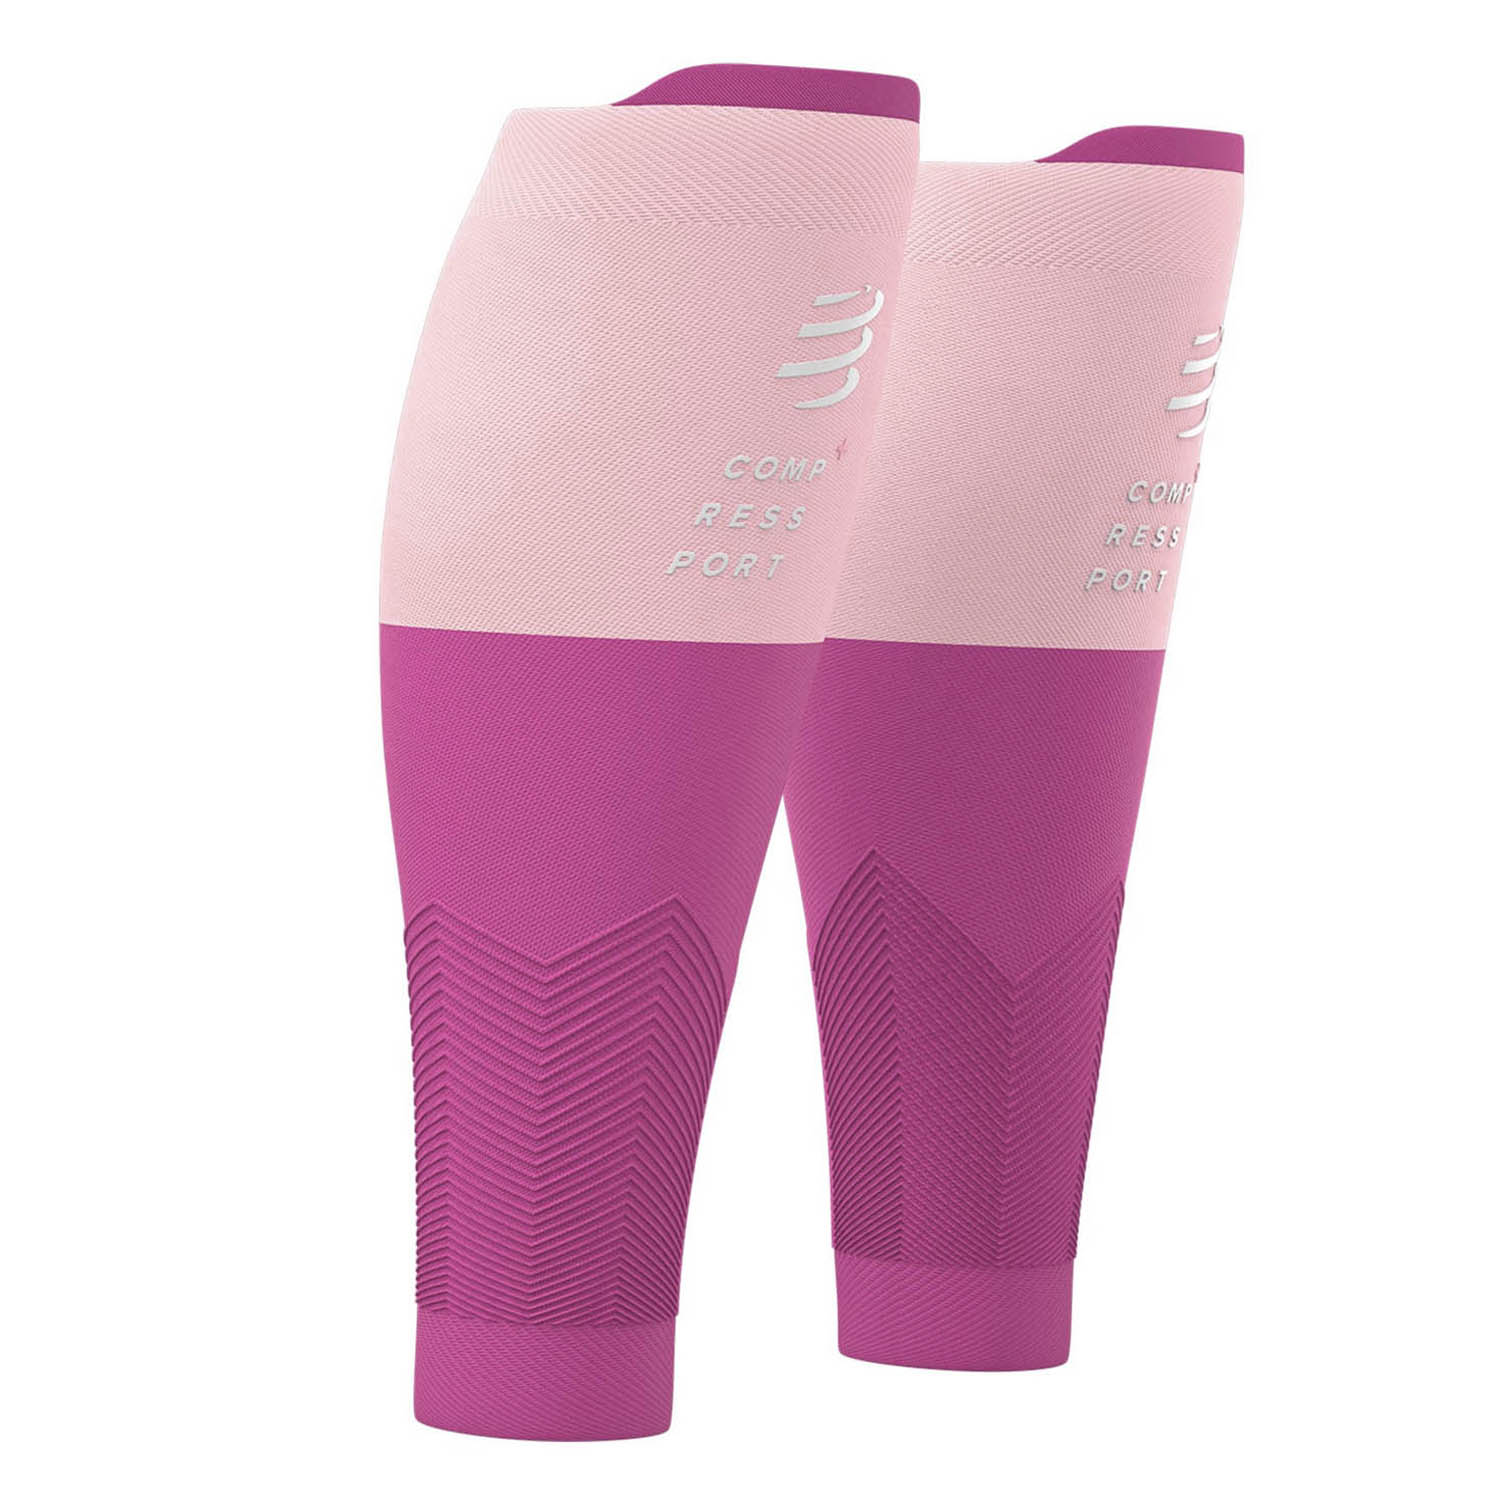 Compressport R2V2 Calf Sleeves - Pink